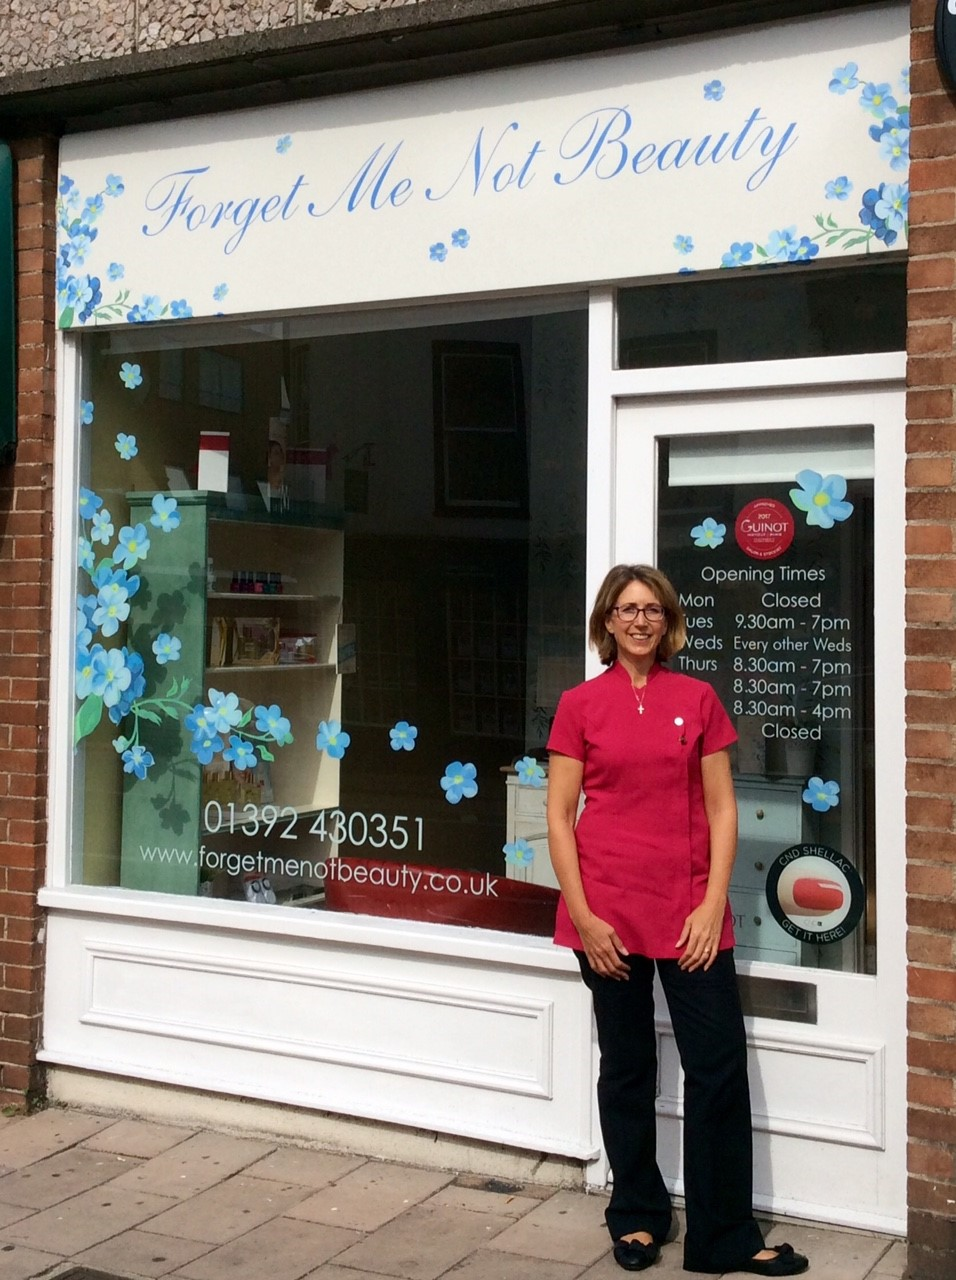 Hi, my name is Jane.  I am very excited about becoming the new owner of Forget Me Not Beauty and would like to take this opportunity to tell you a little about my background in beauty therapy.  I have been in the beauty industry for over 20 years and have worked in many establishments including the St George's Hill prestigious private lawn tennis club in Surrey, St Pierre Park 4* Hotel/Spa in Guernsey and David Lloyd Health Club in Exeter.   I trained in London at Steiner Beauty School gaining my CIBTAC qualification in beauty therapy in 1996.  I am married and have 2 beautiful girls aged 16 and 11 and a springer spaniel called Jess! We have lived in Devon just over 4 years and have recently purchased our forever home, a thatched cottage in a village outside of Exeter.  I look forward to meeting you and taking care of you in the salon  Jane x